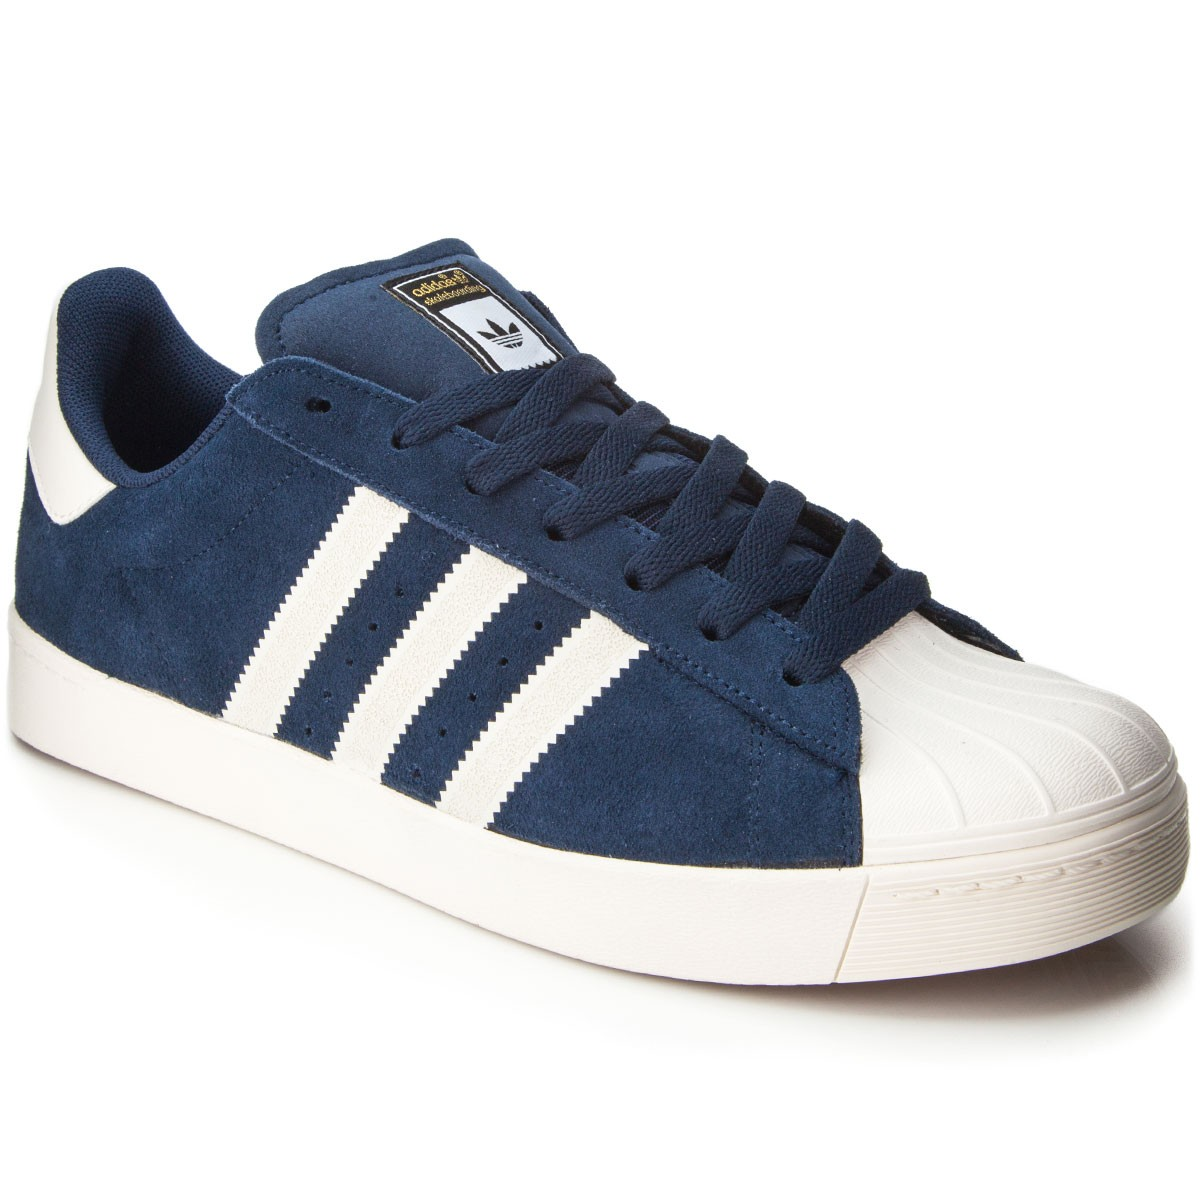 adidas superstar shoes navy blue. Black Bedroom Furniture Sets. Home Design Ideas